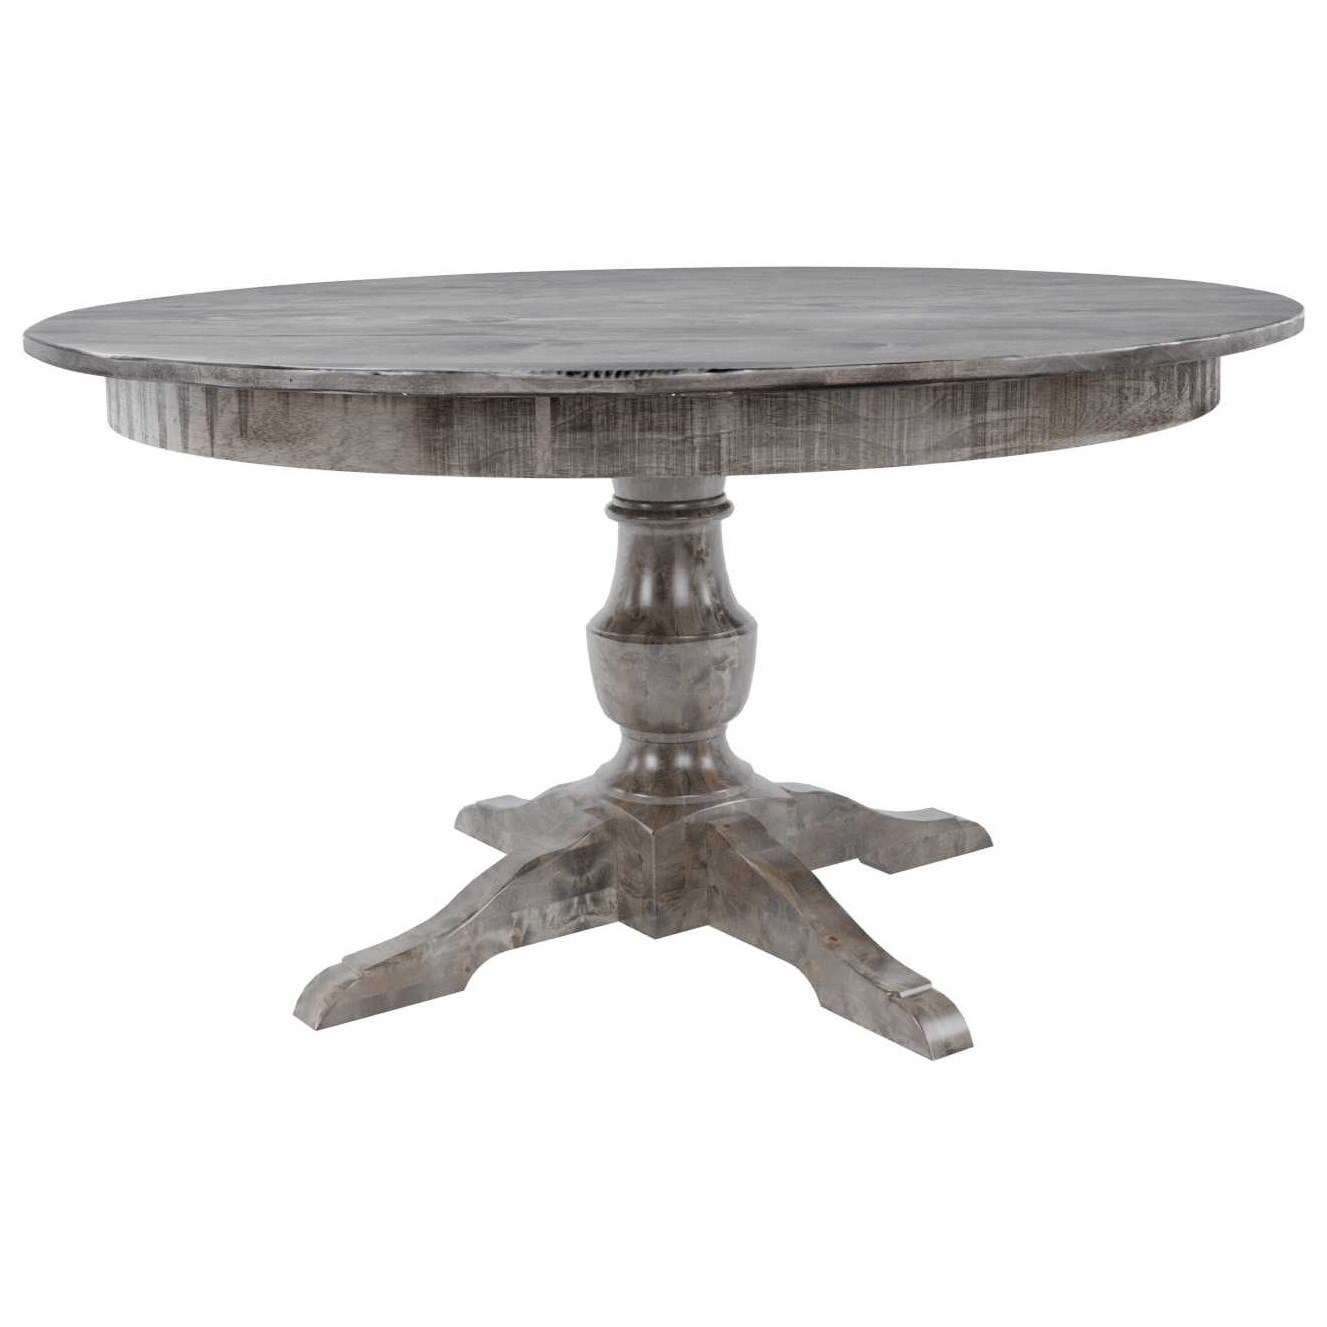 "Champlain - Custom Dining Customizable 54"" Round Wood Solid Top Table by Canadel at Jordan's Home Furnishings"